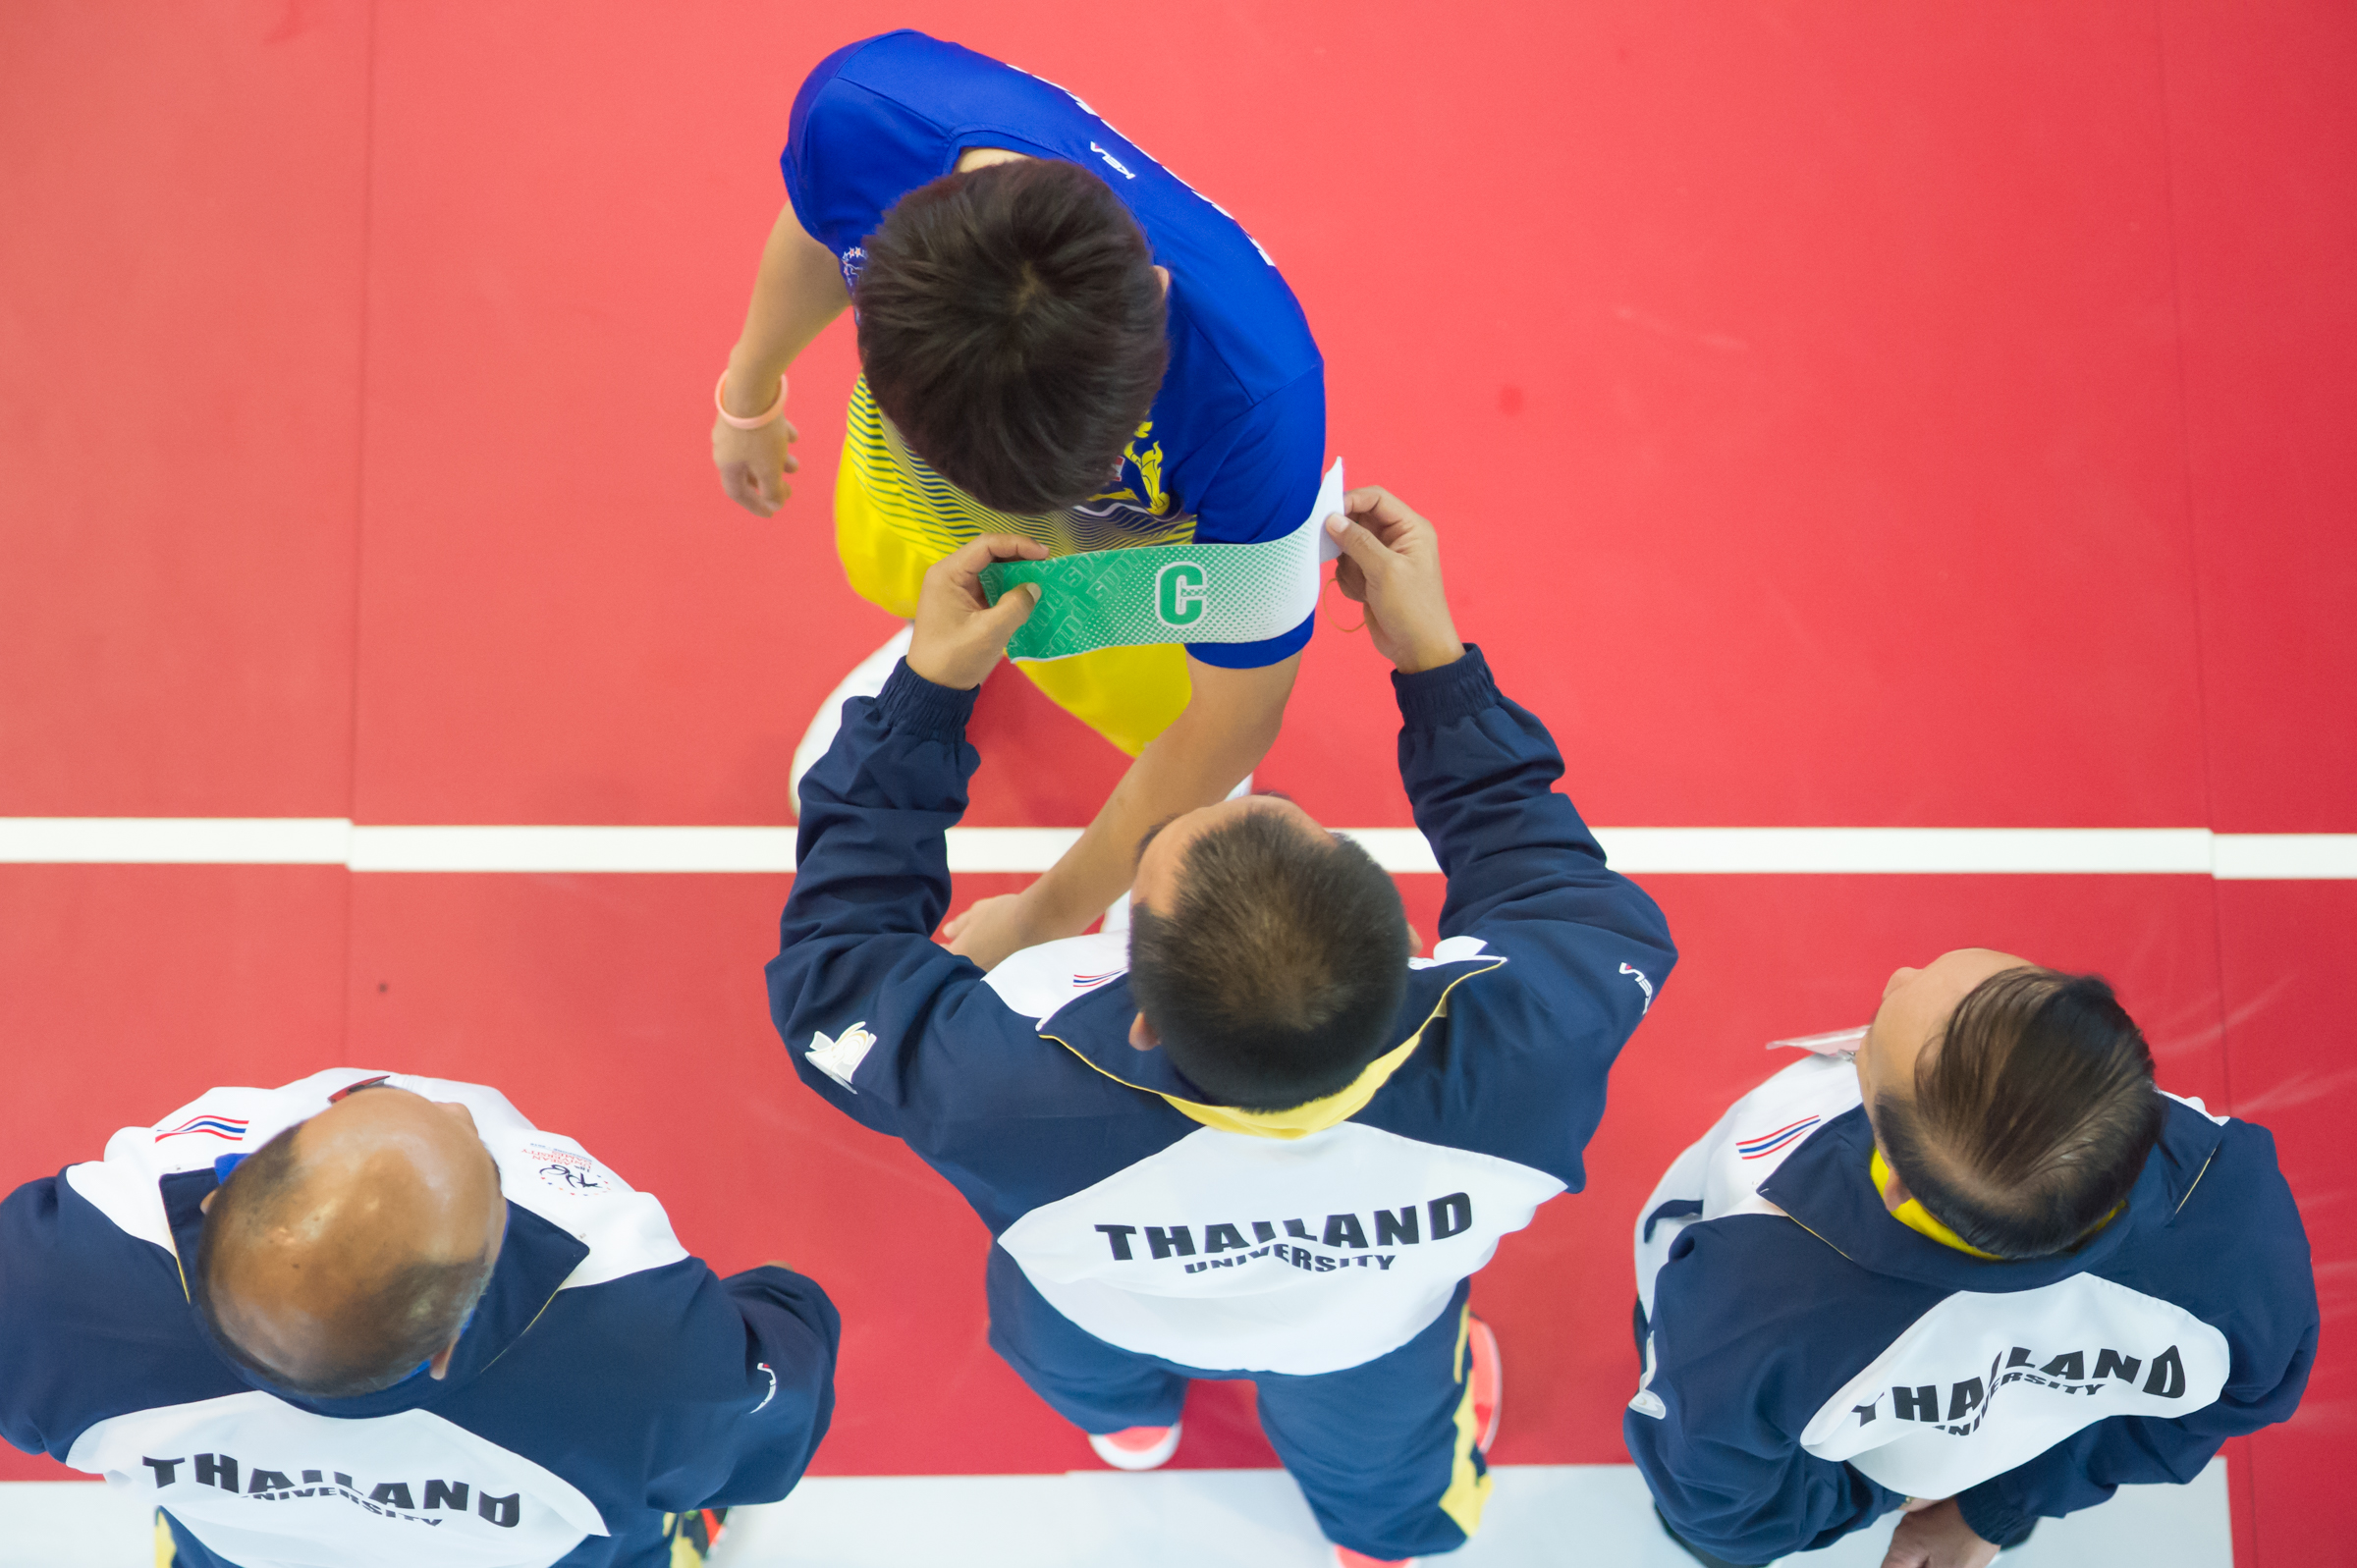 A Thai official puts on the captain armband for a player during the sepak takraw competition of the ASEAN University Games at the Bedok Sports Hall.